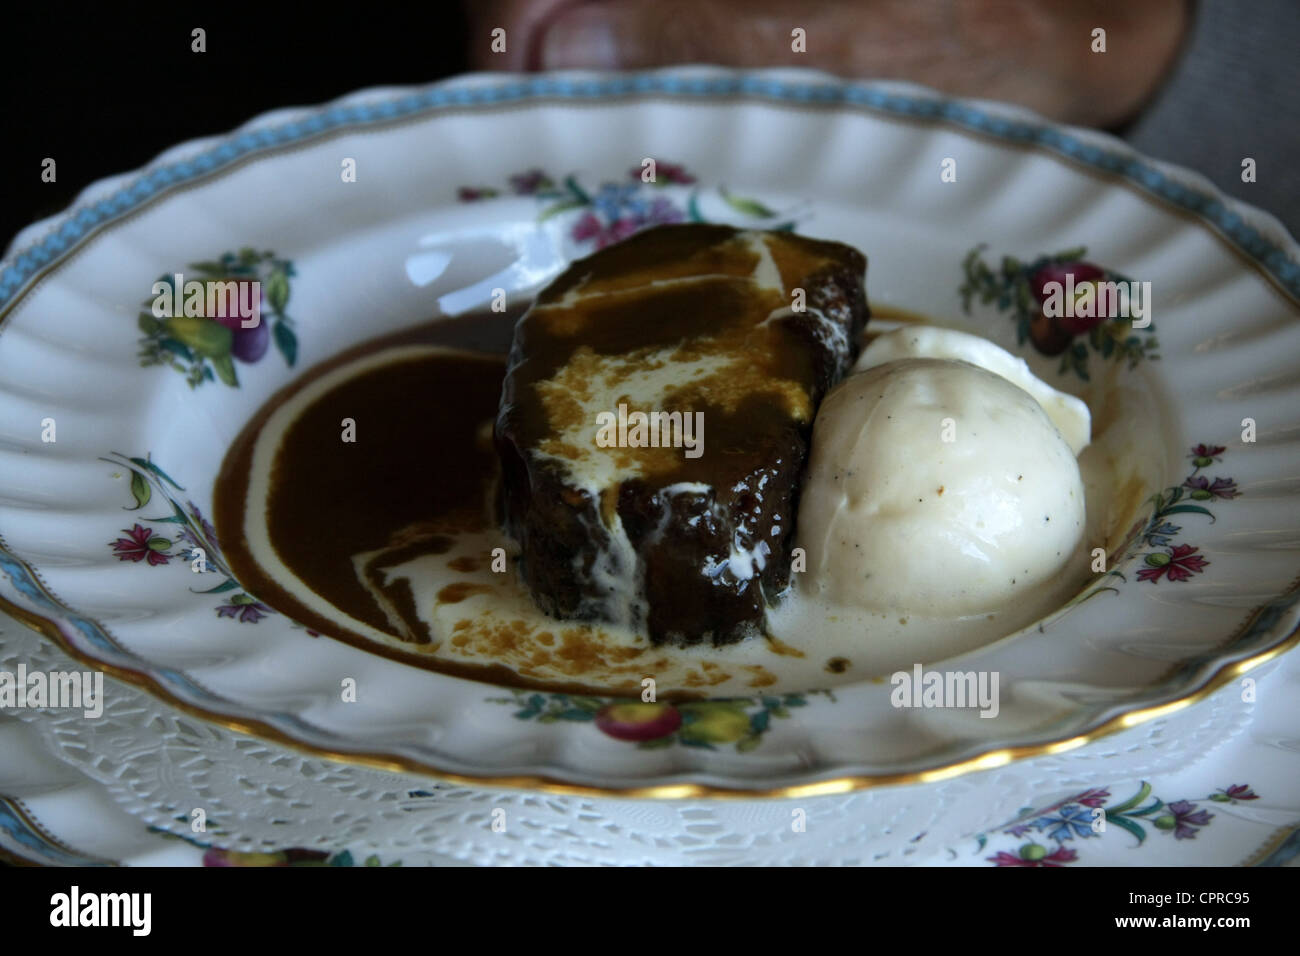 The genuine Sticky Toffee Pudding, the original sweet dish conceived at the Sharrow Bay Hotel, Cumbria - Stock Image